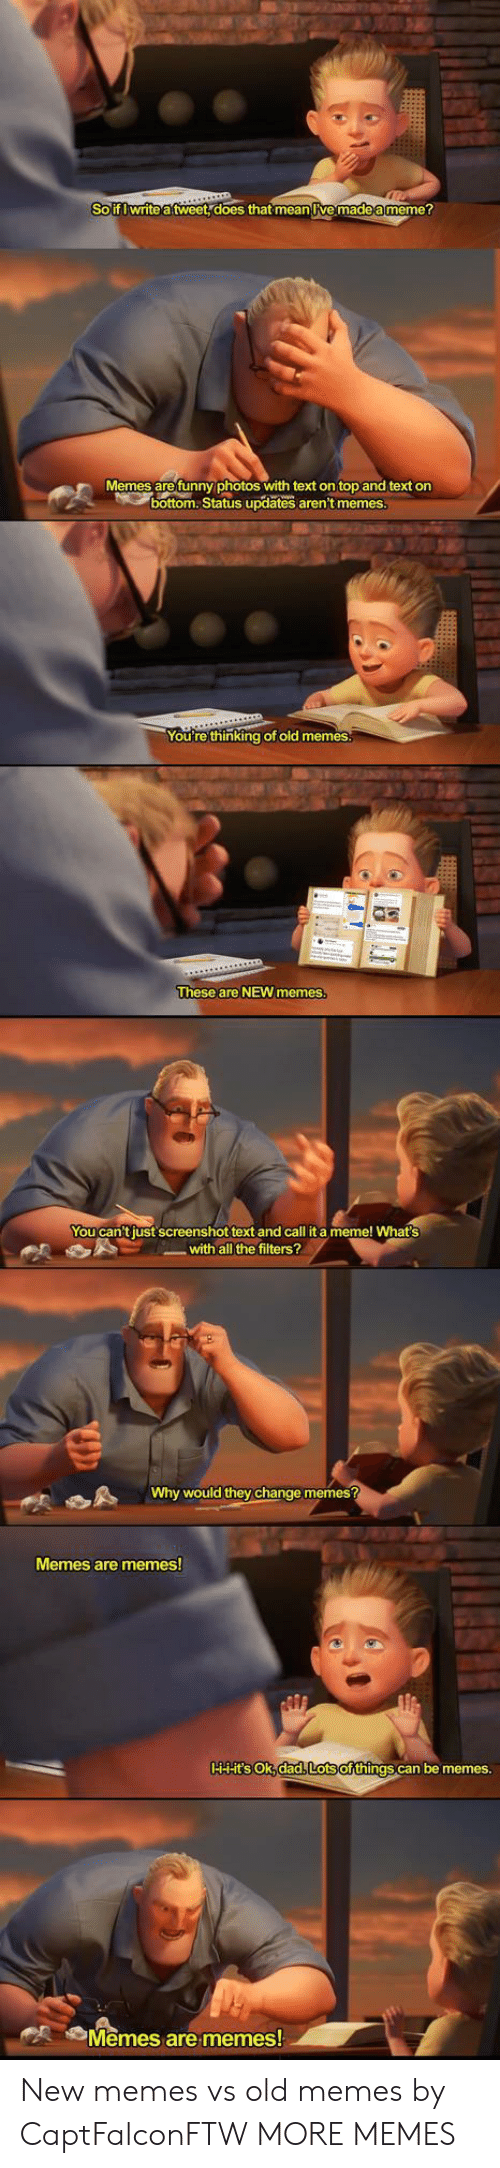 new memes: Solf Iwrite atweet does that mean lve madea meme?  Memes are funny photos with text on top and text on  bottom.Status updates aren't memes  You're thinking ot old memes  These are NEW memes  You can't just screenshot text and call it a meme! What's  with all the filters?  Why would they change memes?  Memes are memes  HHHt'SsoK,dad Lotsofthings can be memes.  Memes arememes New memes vs old memes by CaptFalconFTW MORE MEMES